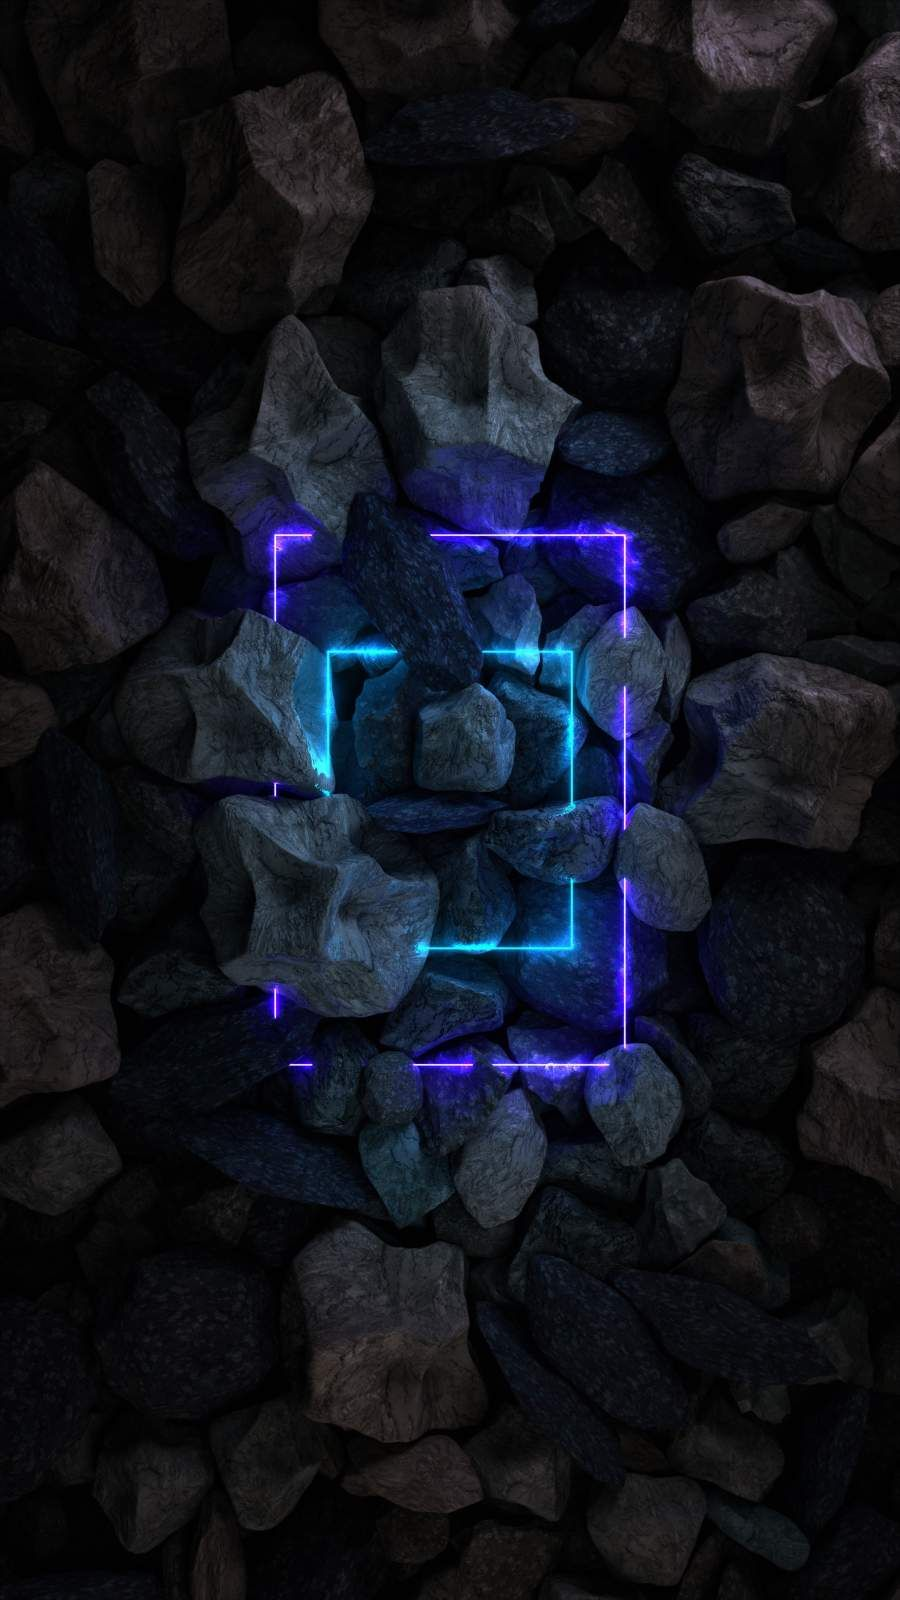 Stone Rocks Neon Light iPhone Wallpaper - iPhone Wallpapers